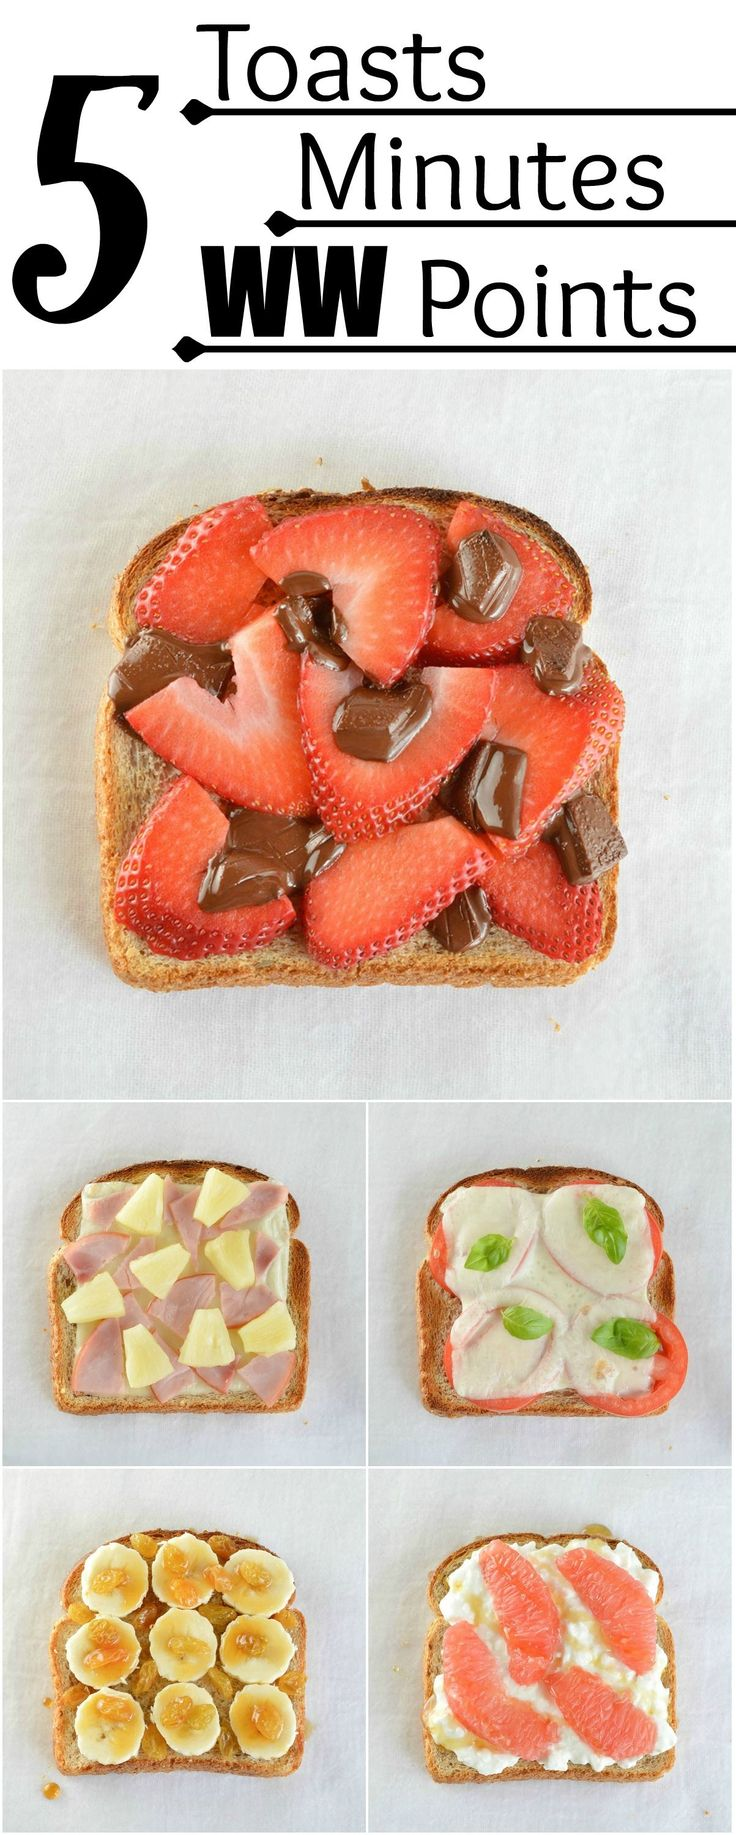 These 5 Minute Healthy Snack Ideas will help you stay on track! 5 toast ideas ready in 5 minutes or less. All are 5 Weight Watchers Points or less! #WeightWatchers @weightwatchers #WWSponsored